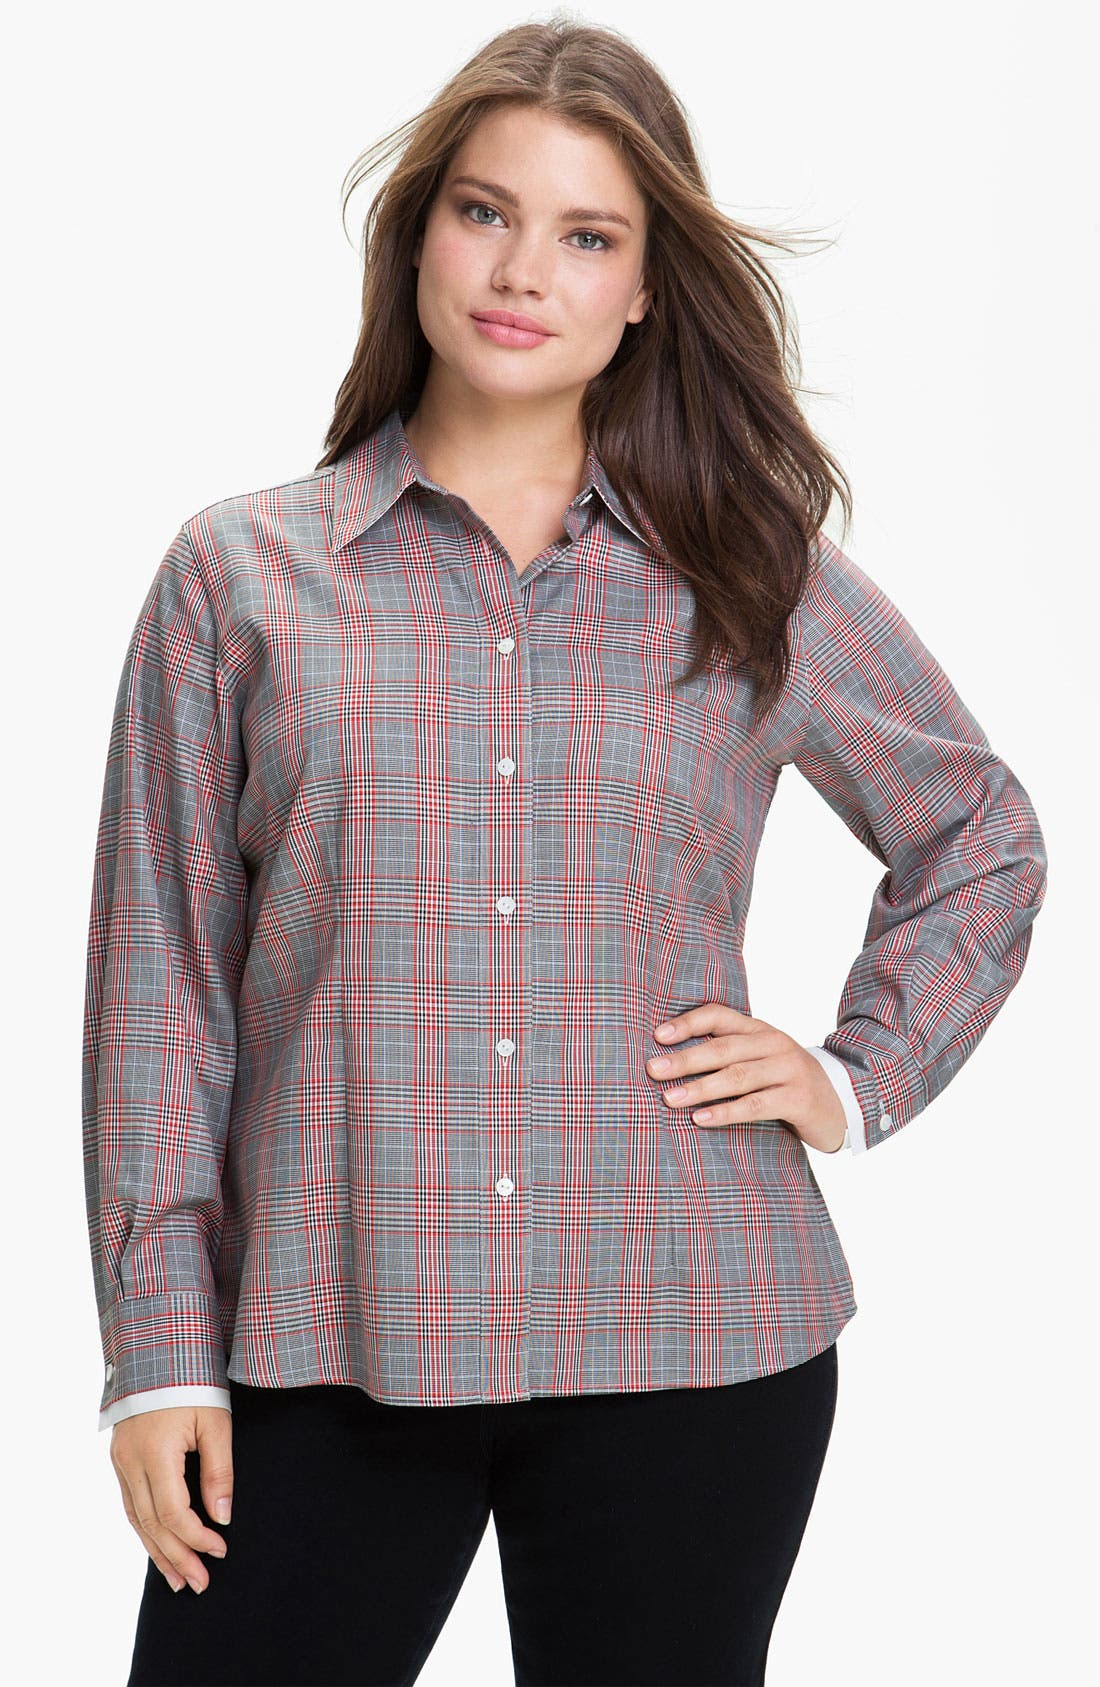 Alternate Image 1 Selected - Foxcroft Glen Plaid Wrinkle Free Shaped Shirt (Plus)